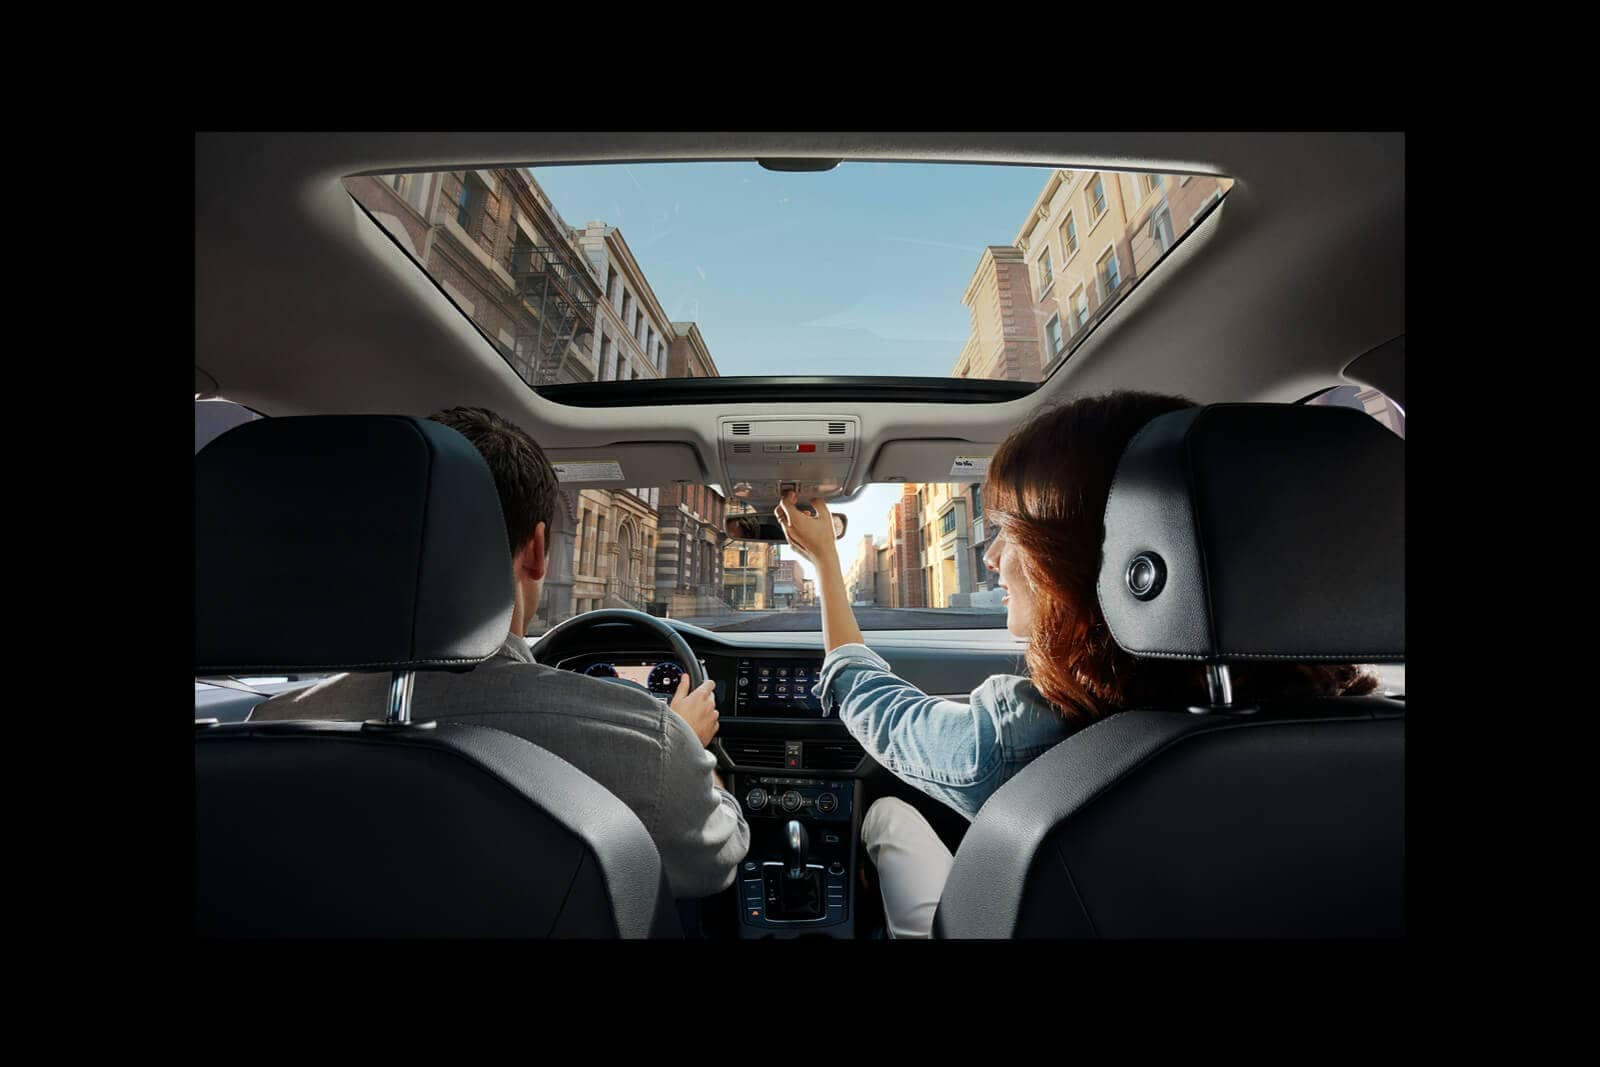 2019-Volkswagen-Jetta-panoramic-sunroof